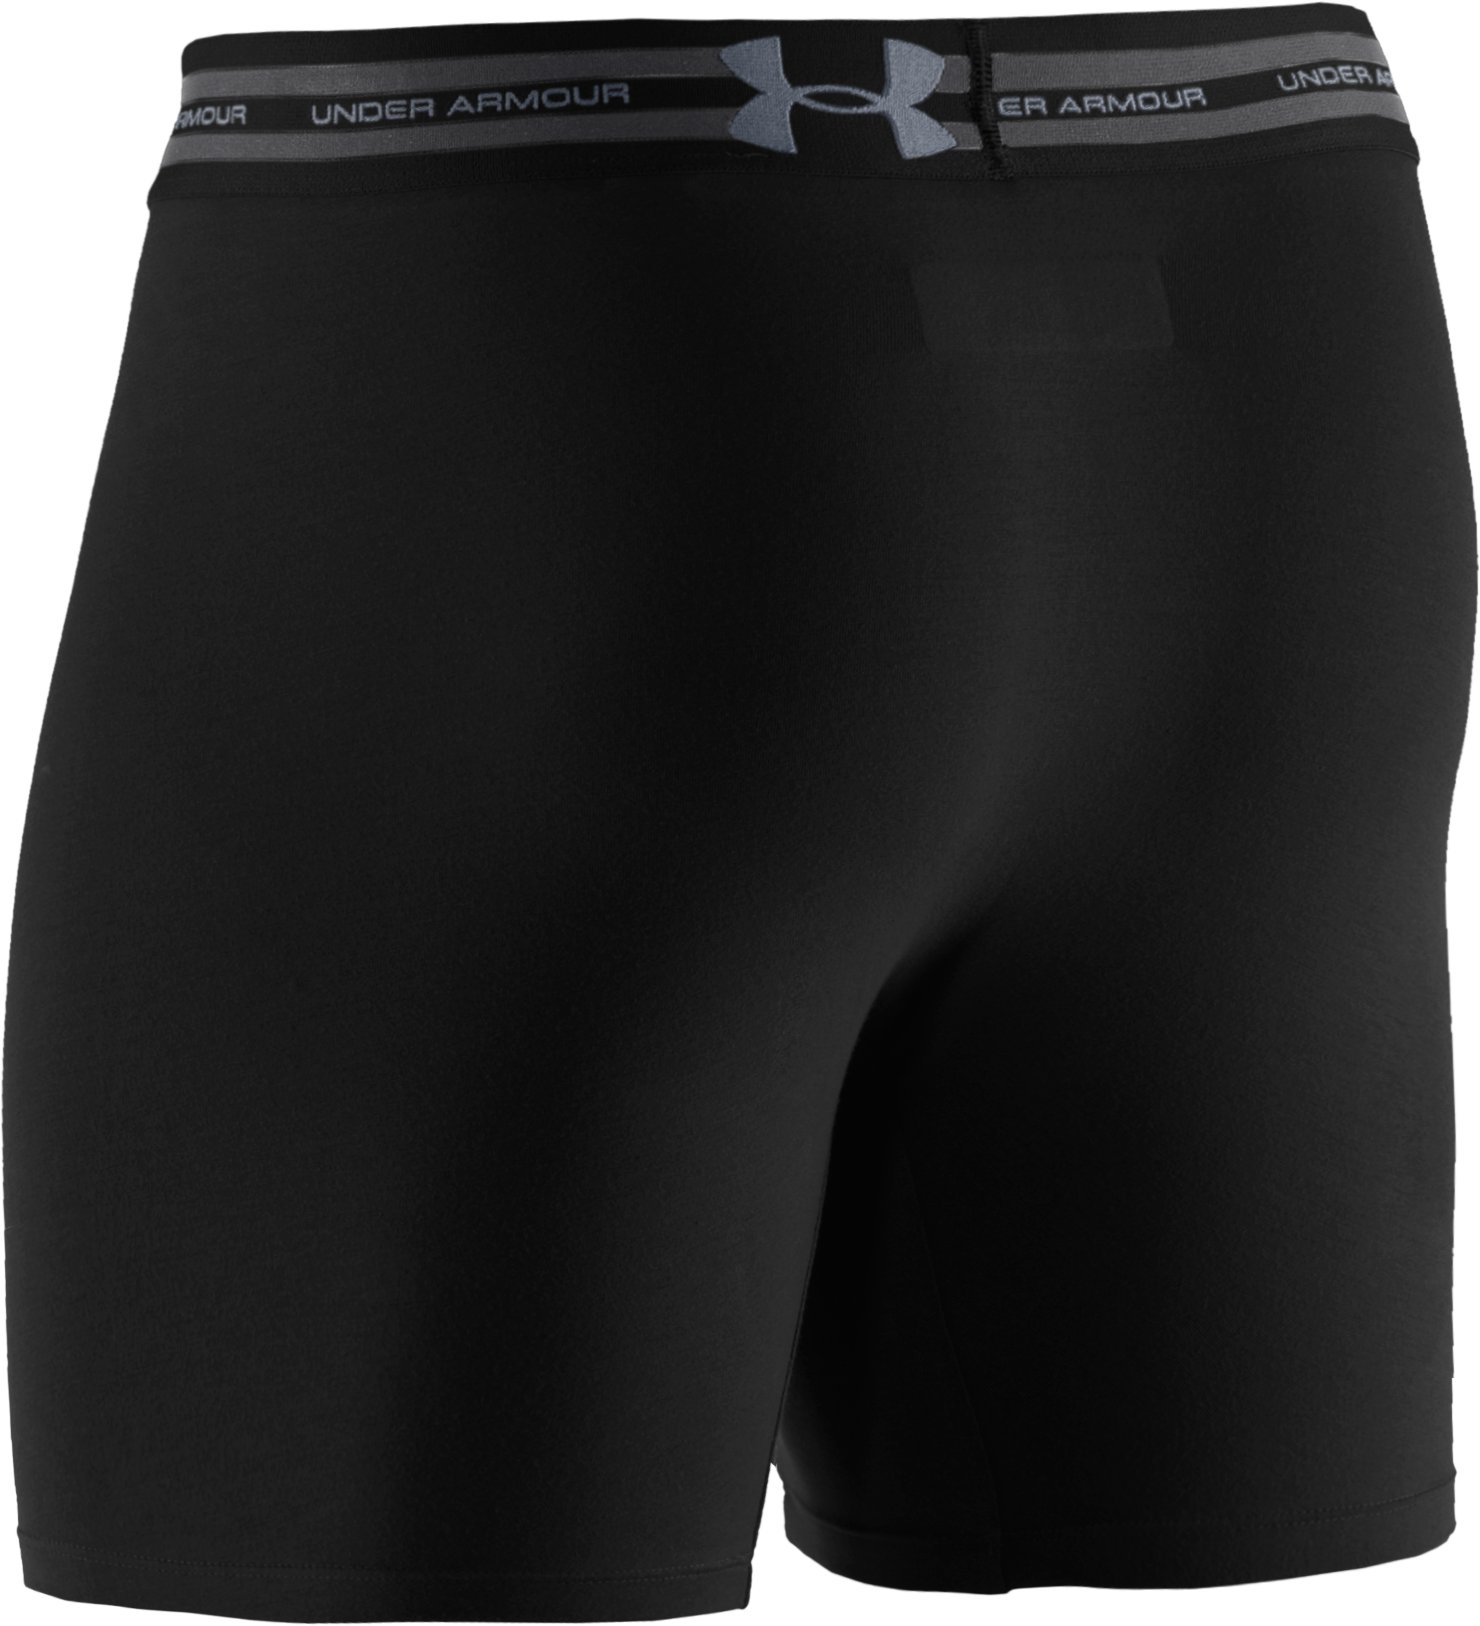 "Men's Charged Cotton® 6"", Black ,"